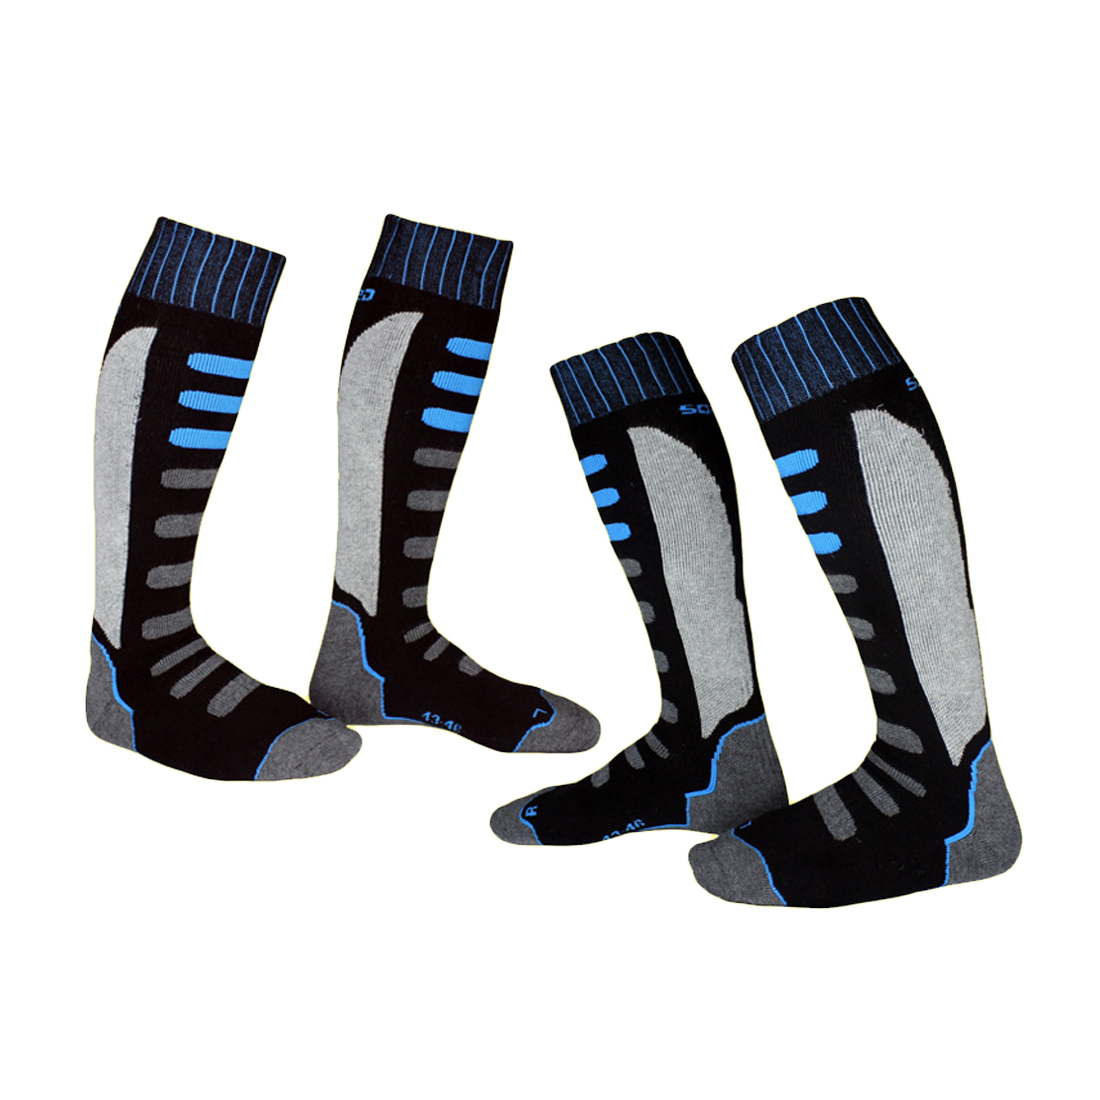 Warm Winter Men Thermal Ski Socks Thick Cotton Sports Snowboard Cycling Skiing Soccer Thermosocks Leg Warmers